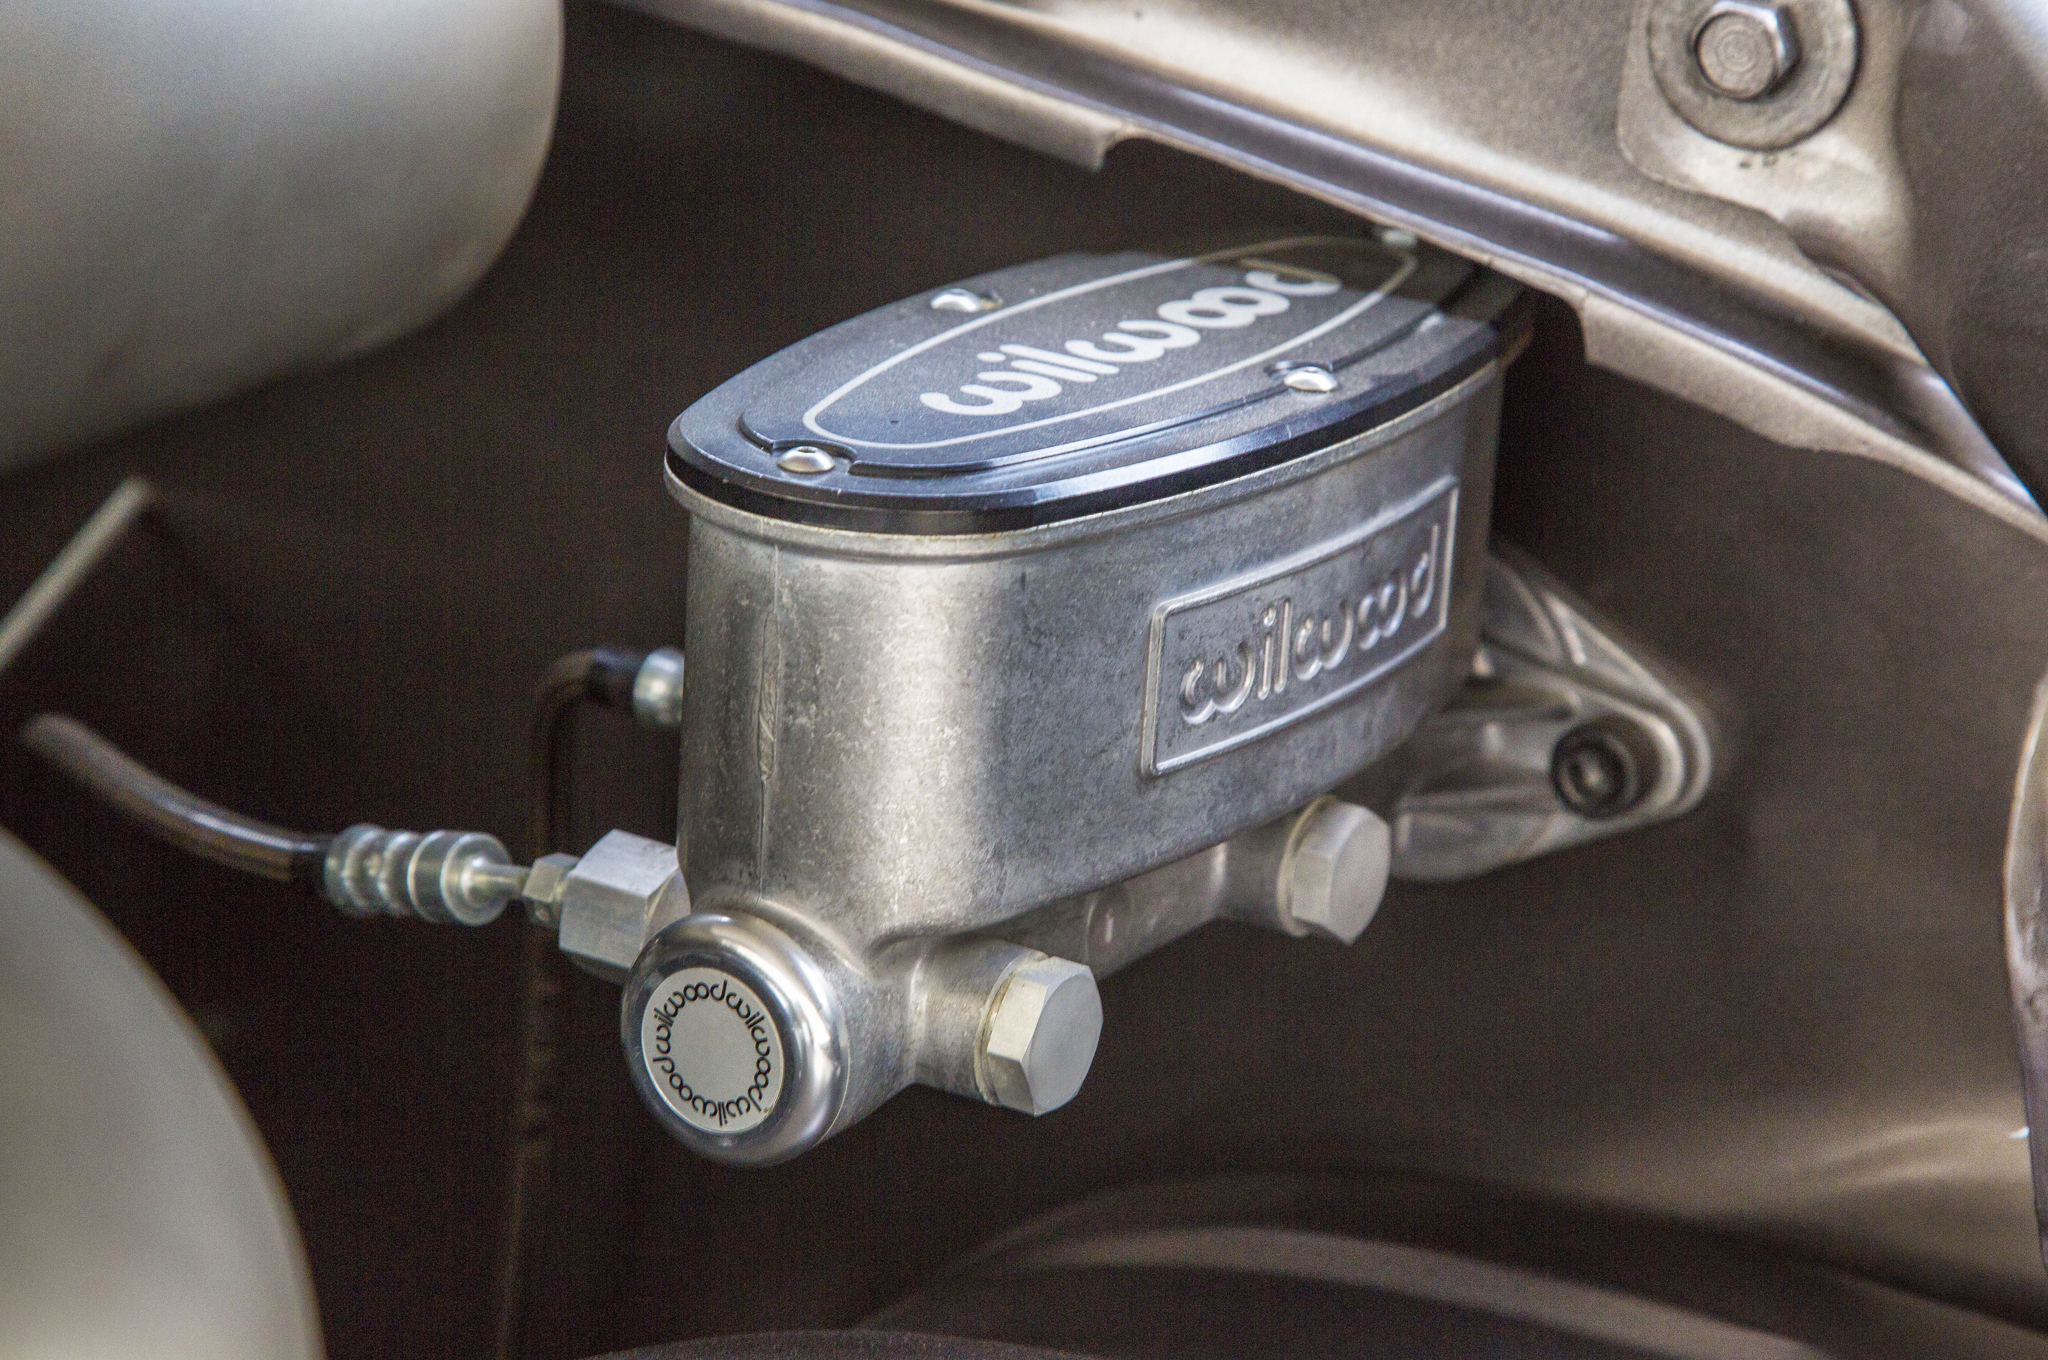 Running a diesel means no vacuum boost for brakes, so Weaver Customs went with a mechanical master cylinder from Wilwood.